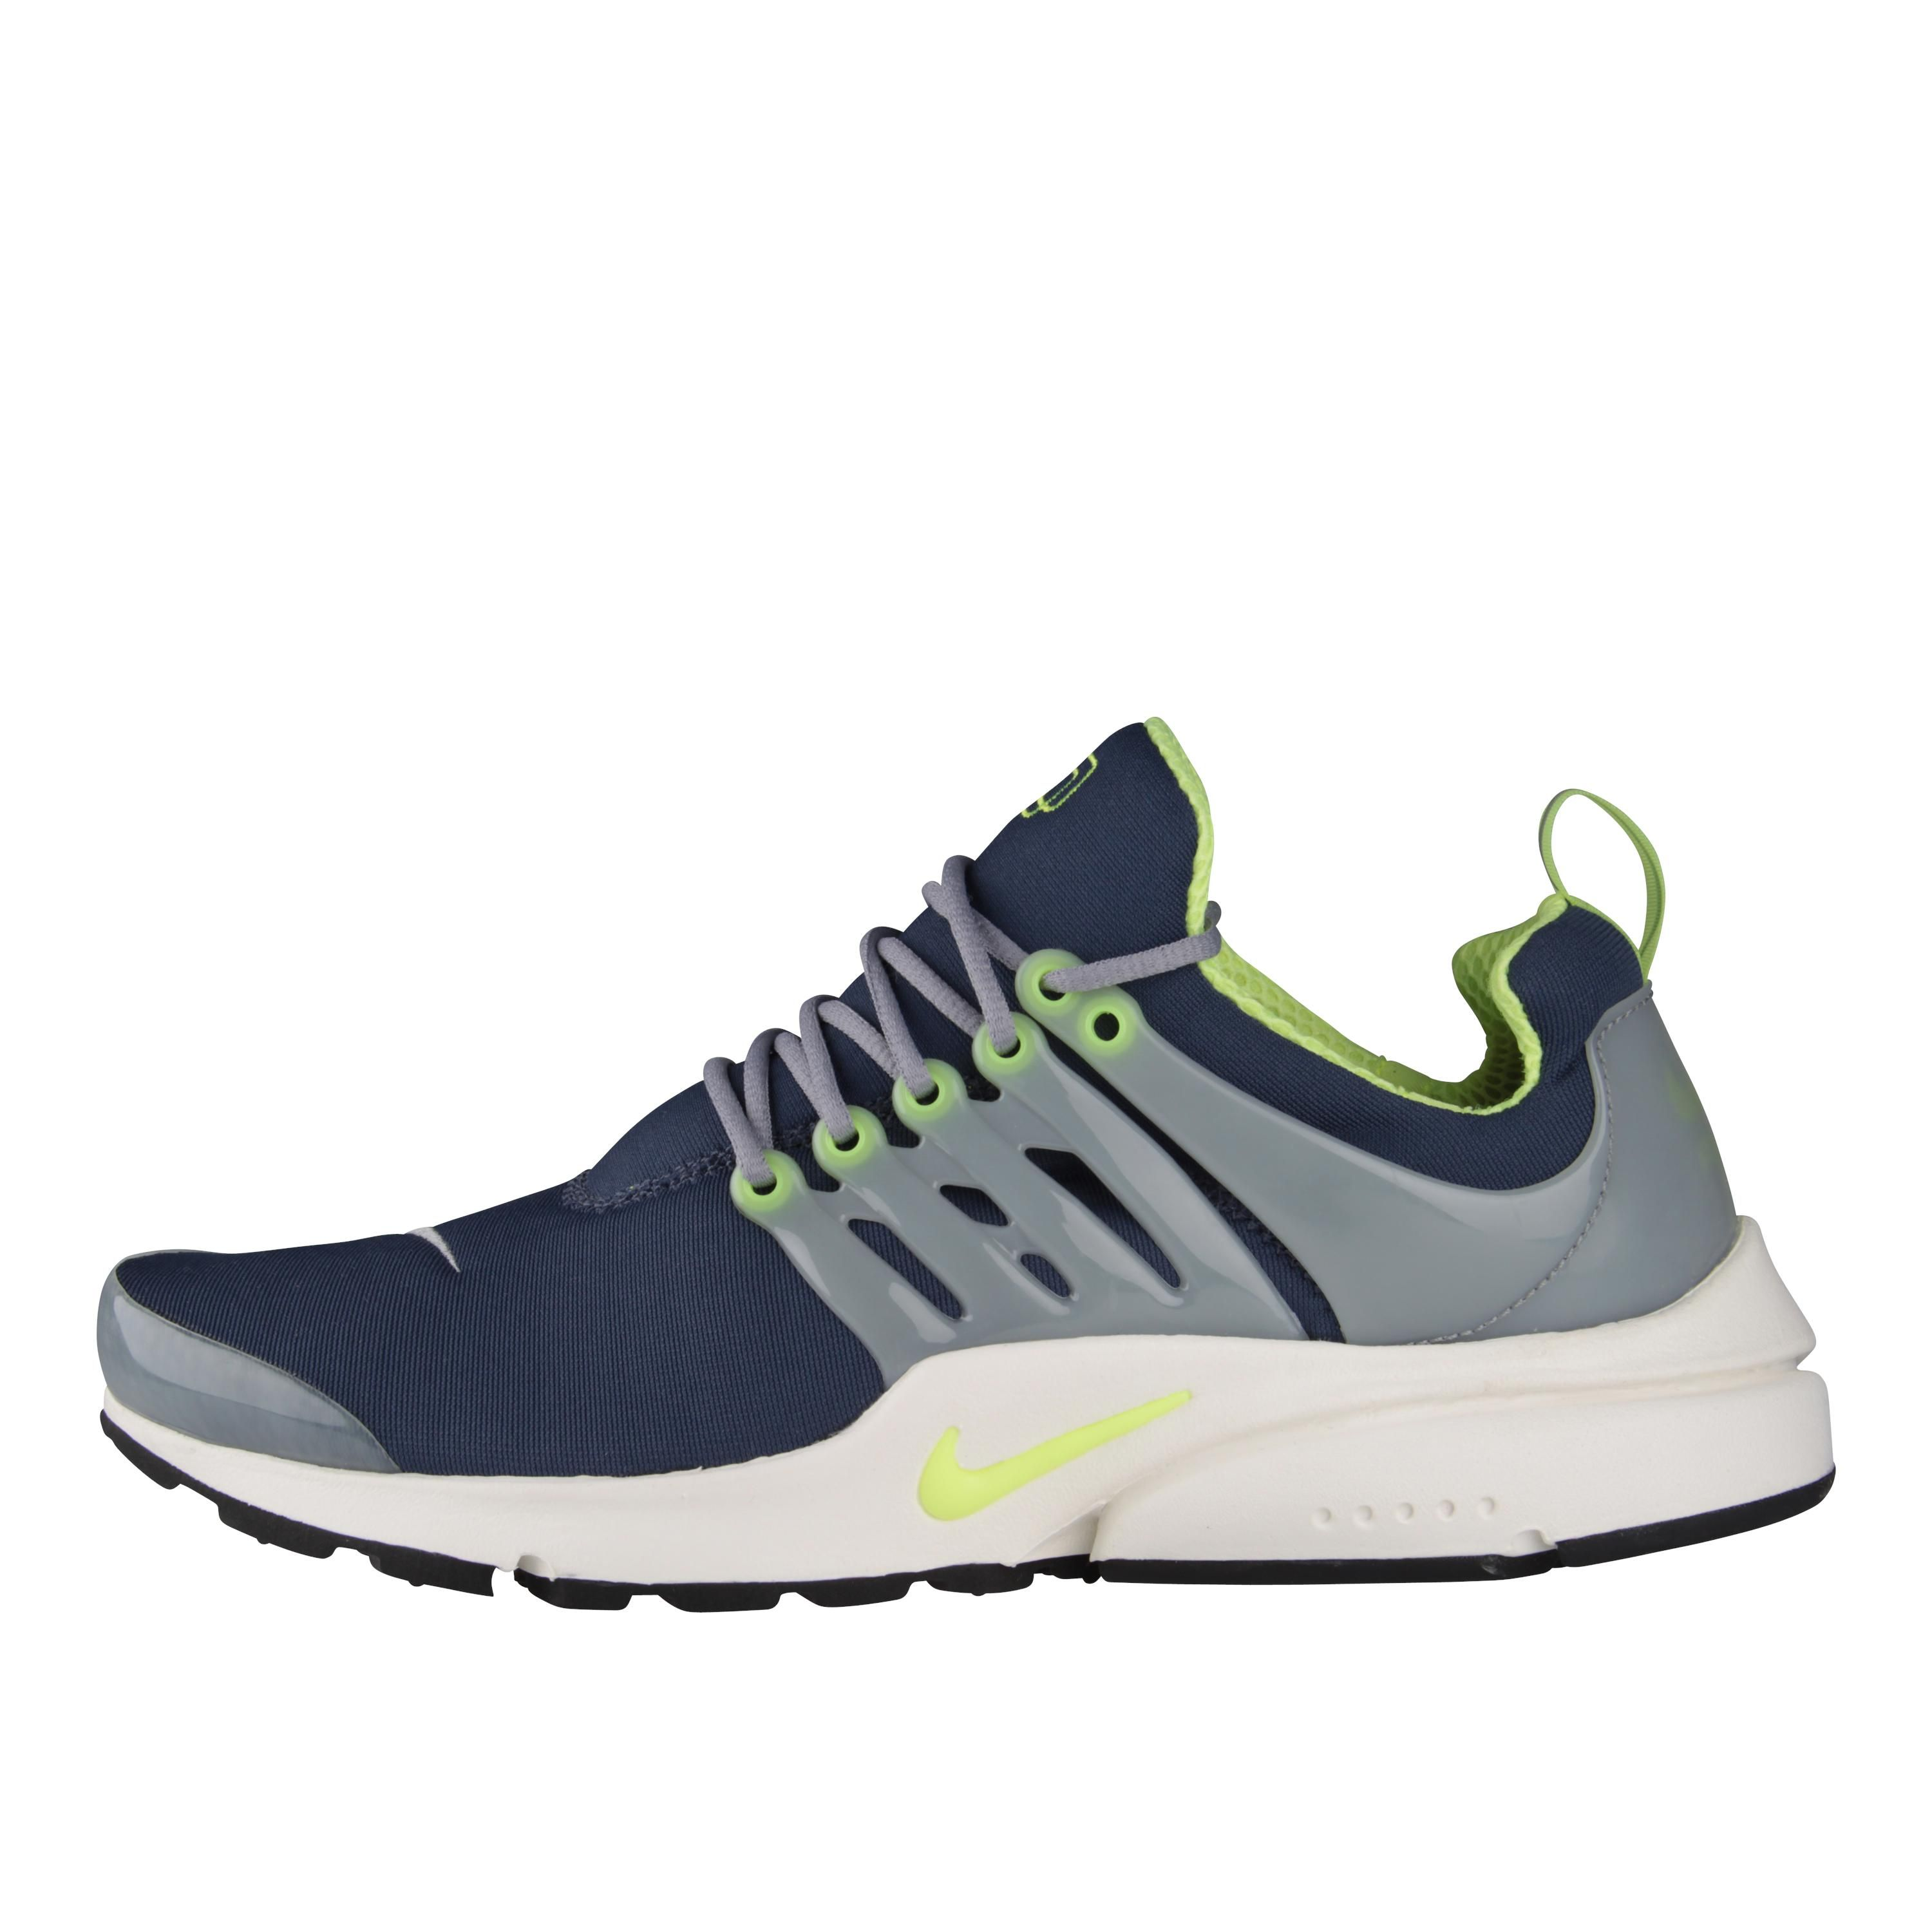 comforter nike shoes running s pin comfortable women zoom most winflo